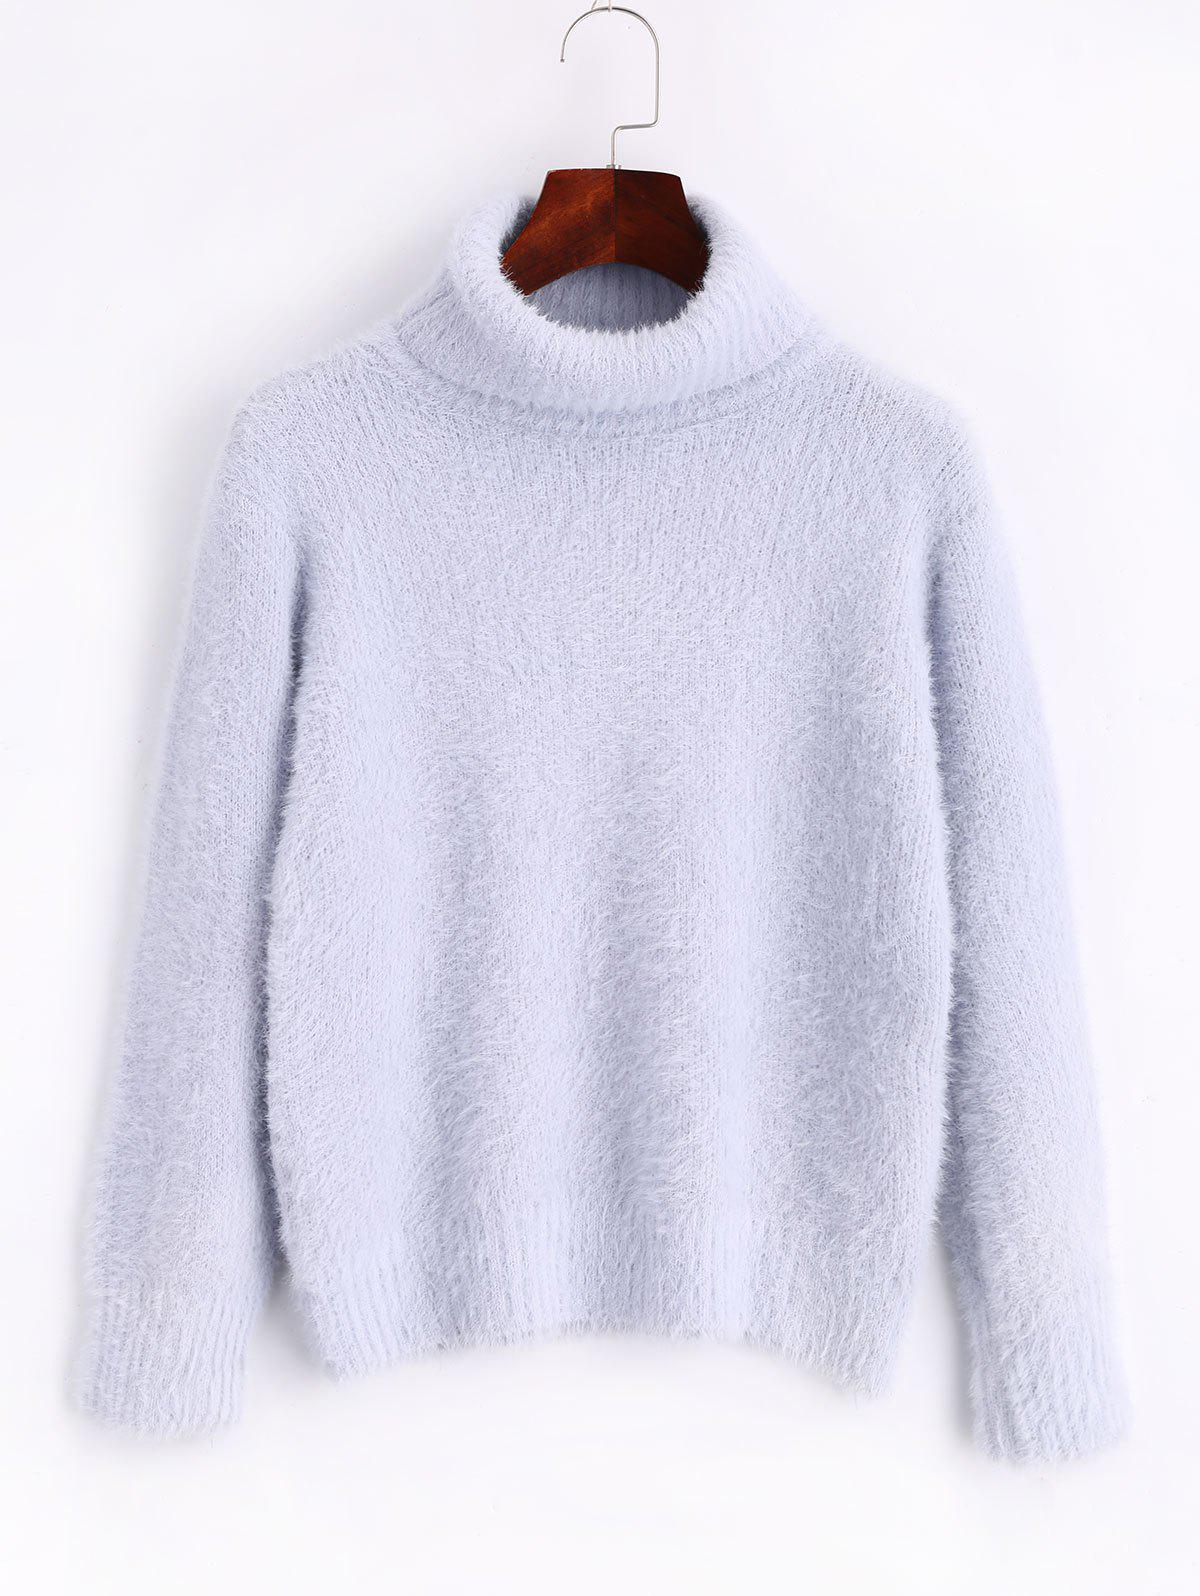 Turtleneck Mohair Pullover Sweater trendy irregular plaid printed pullover mohair sweater for women